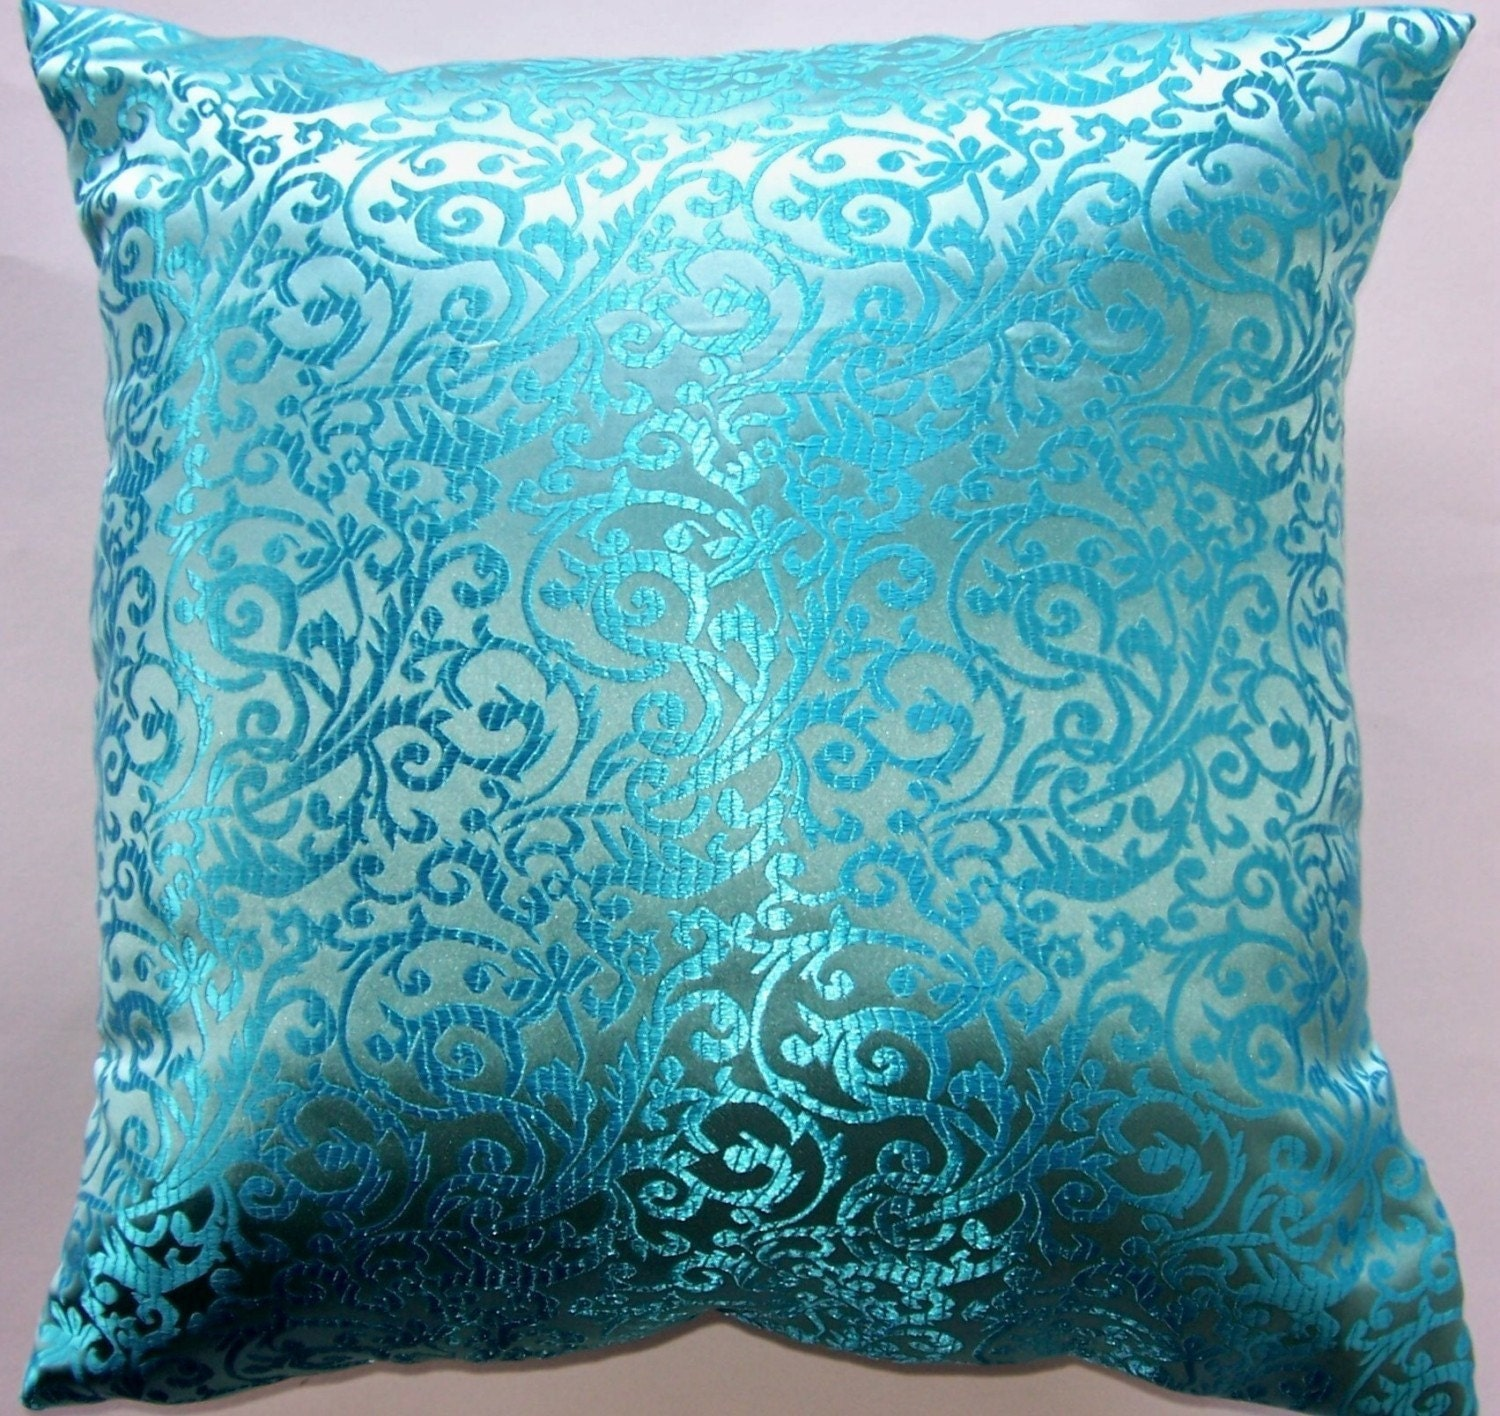 Decorative Pillows In Turquoise : Turquoise Throw Pillow Cover Satin Brocade Cushion Cover